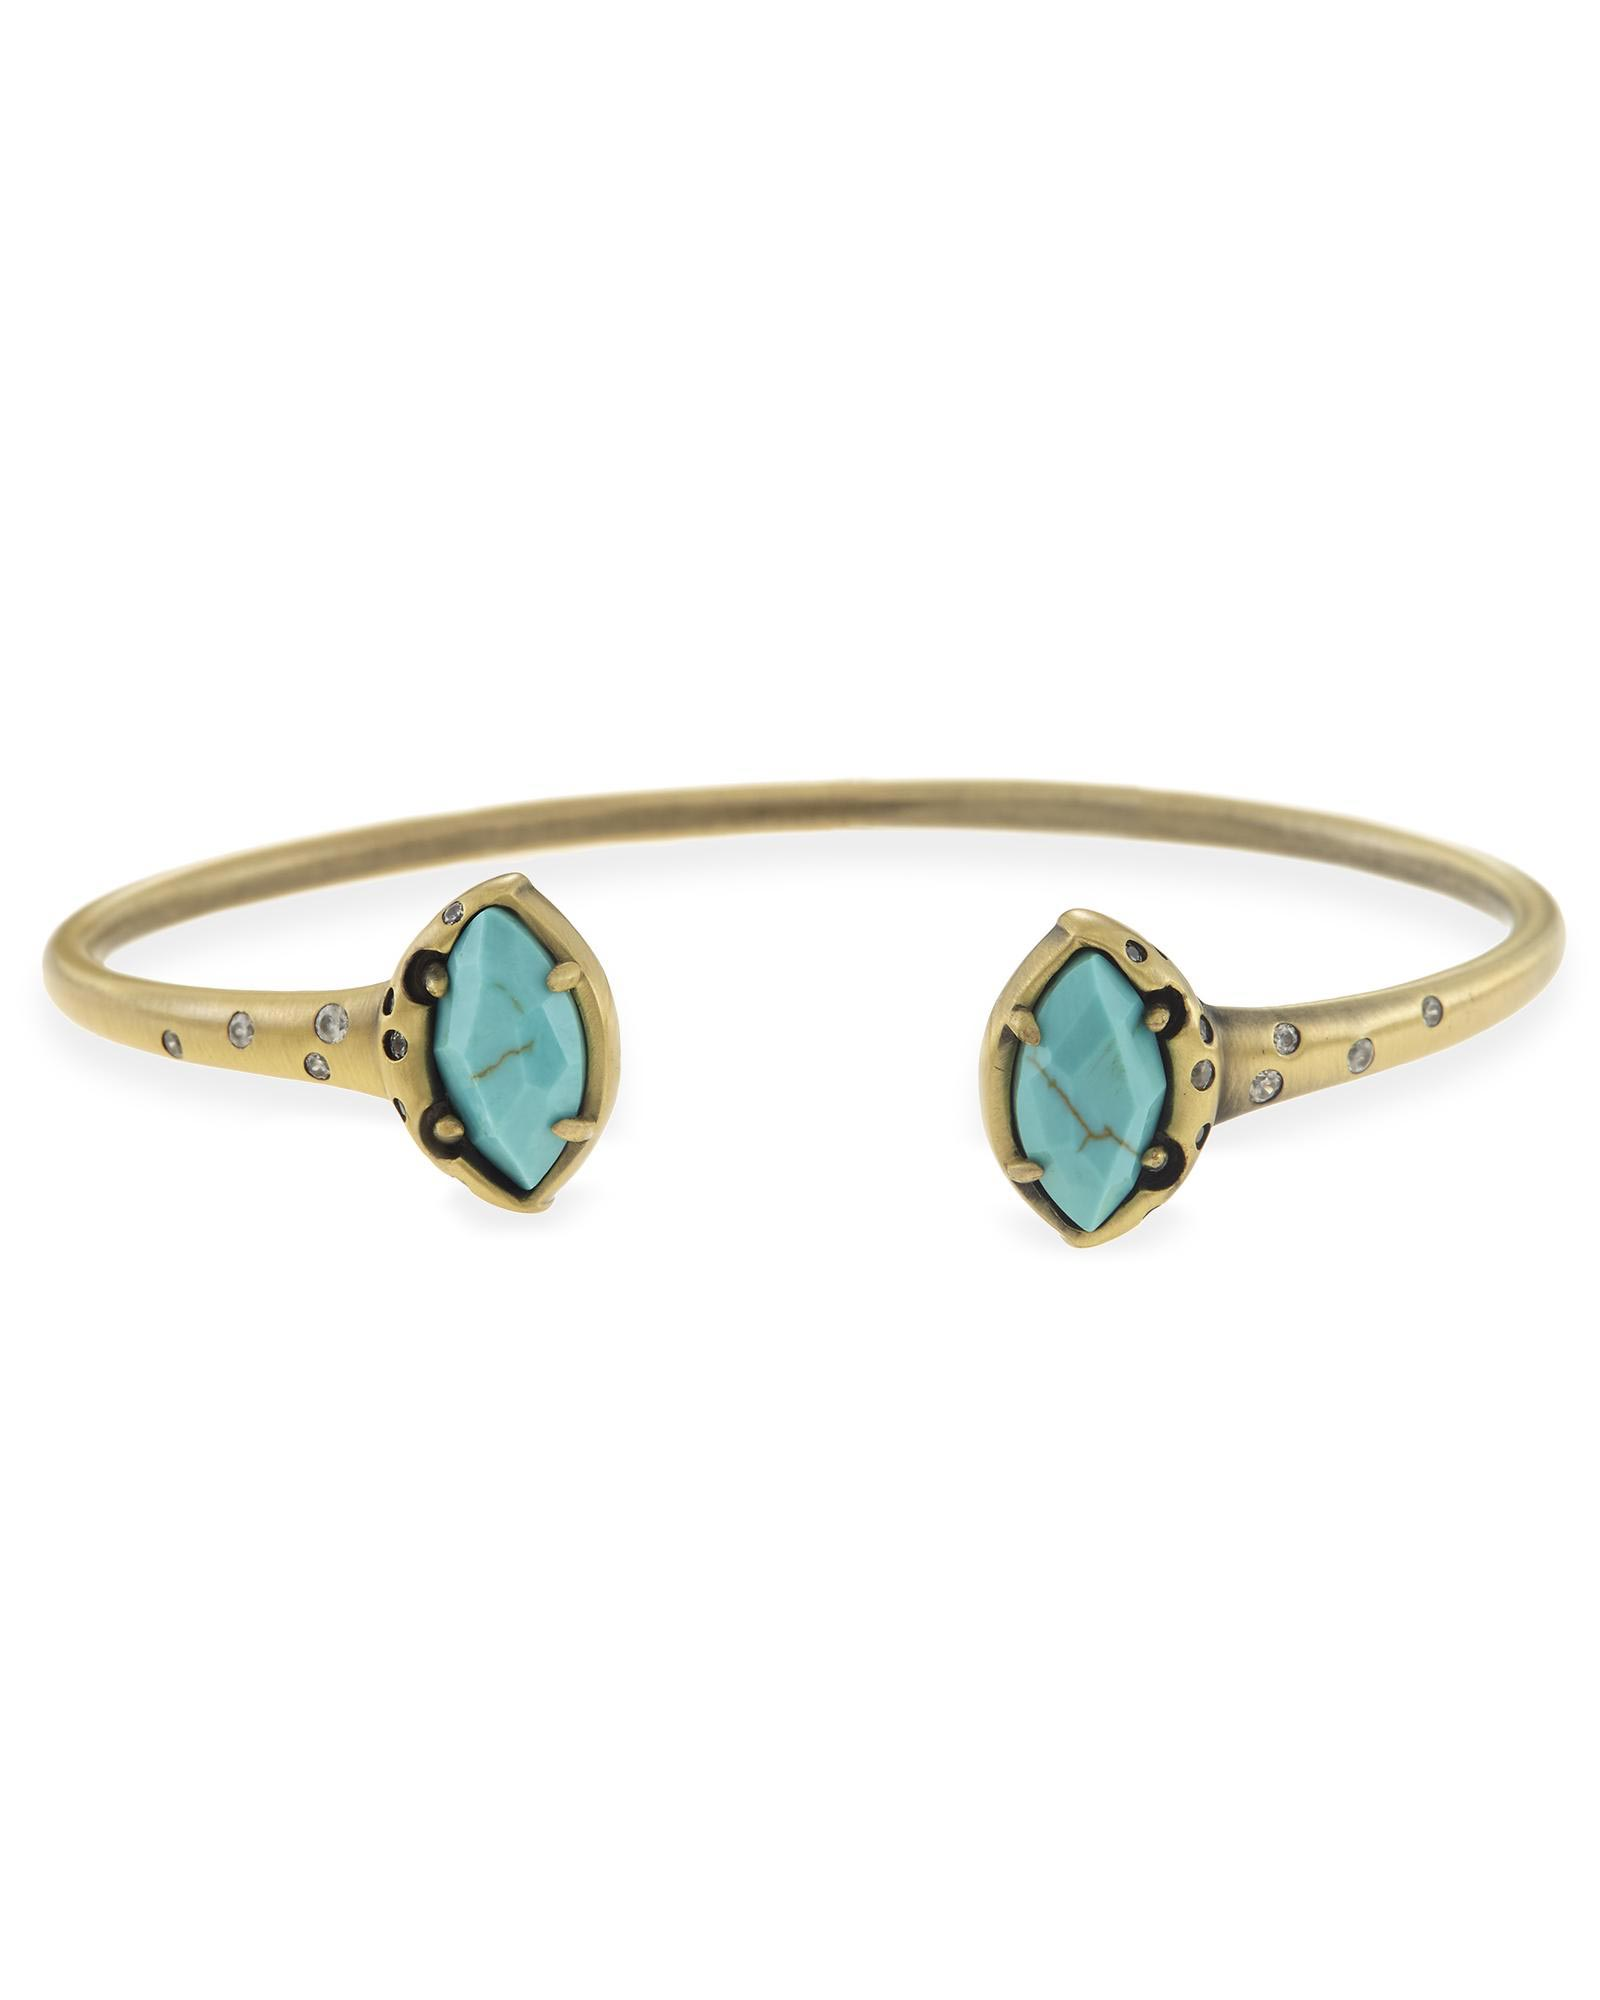 Laura Pinch Cuff Bracelet in Variegated Turquoise